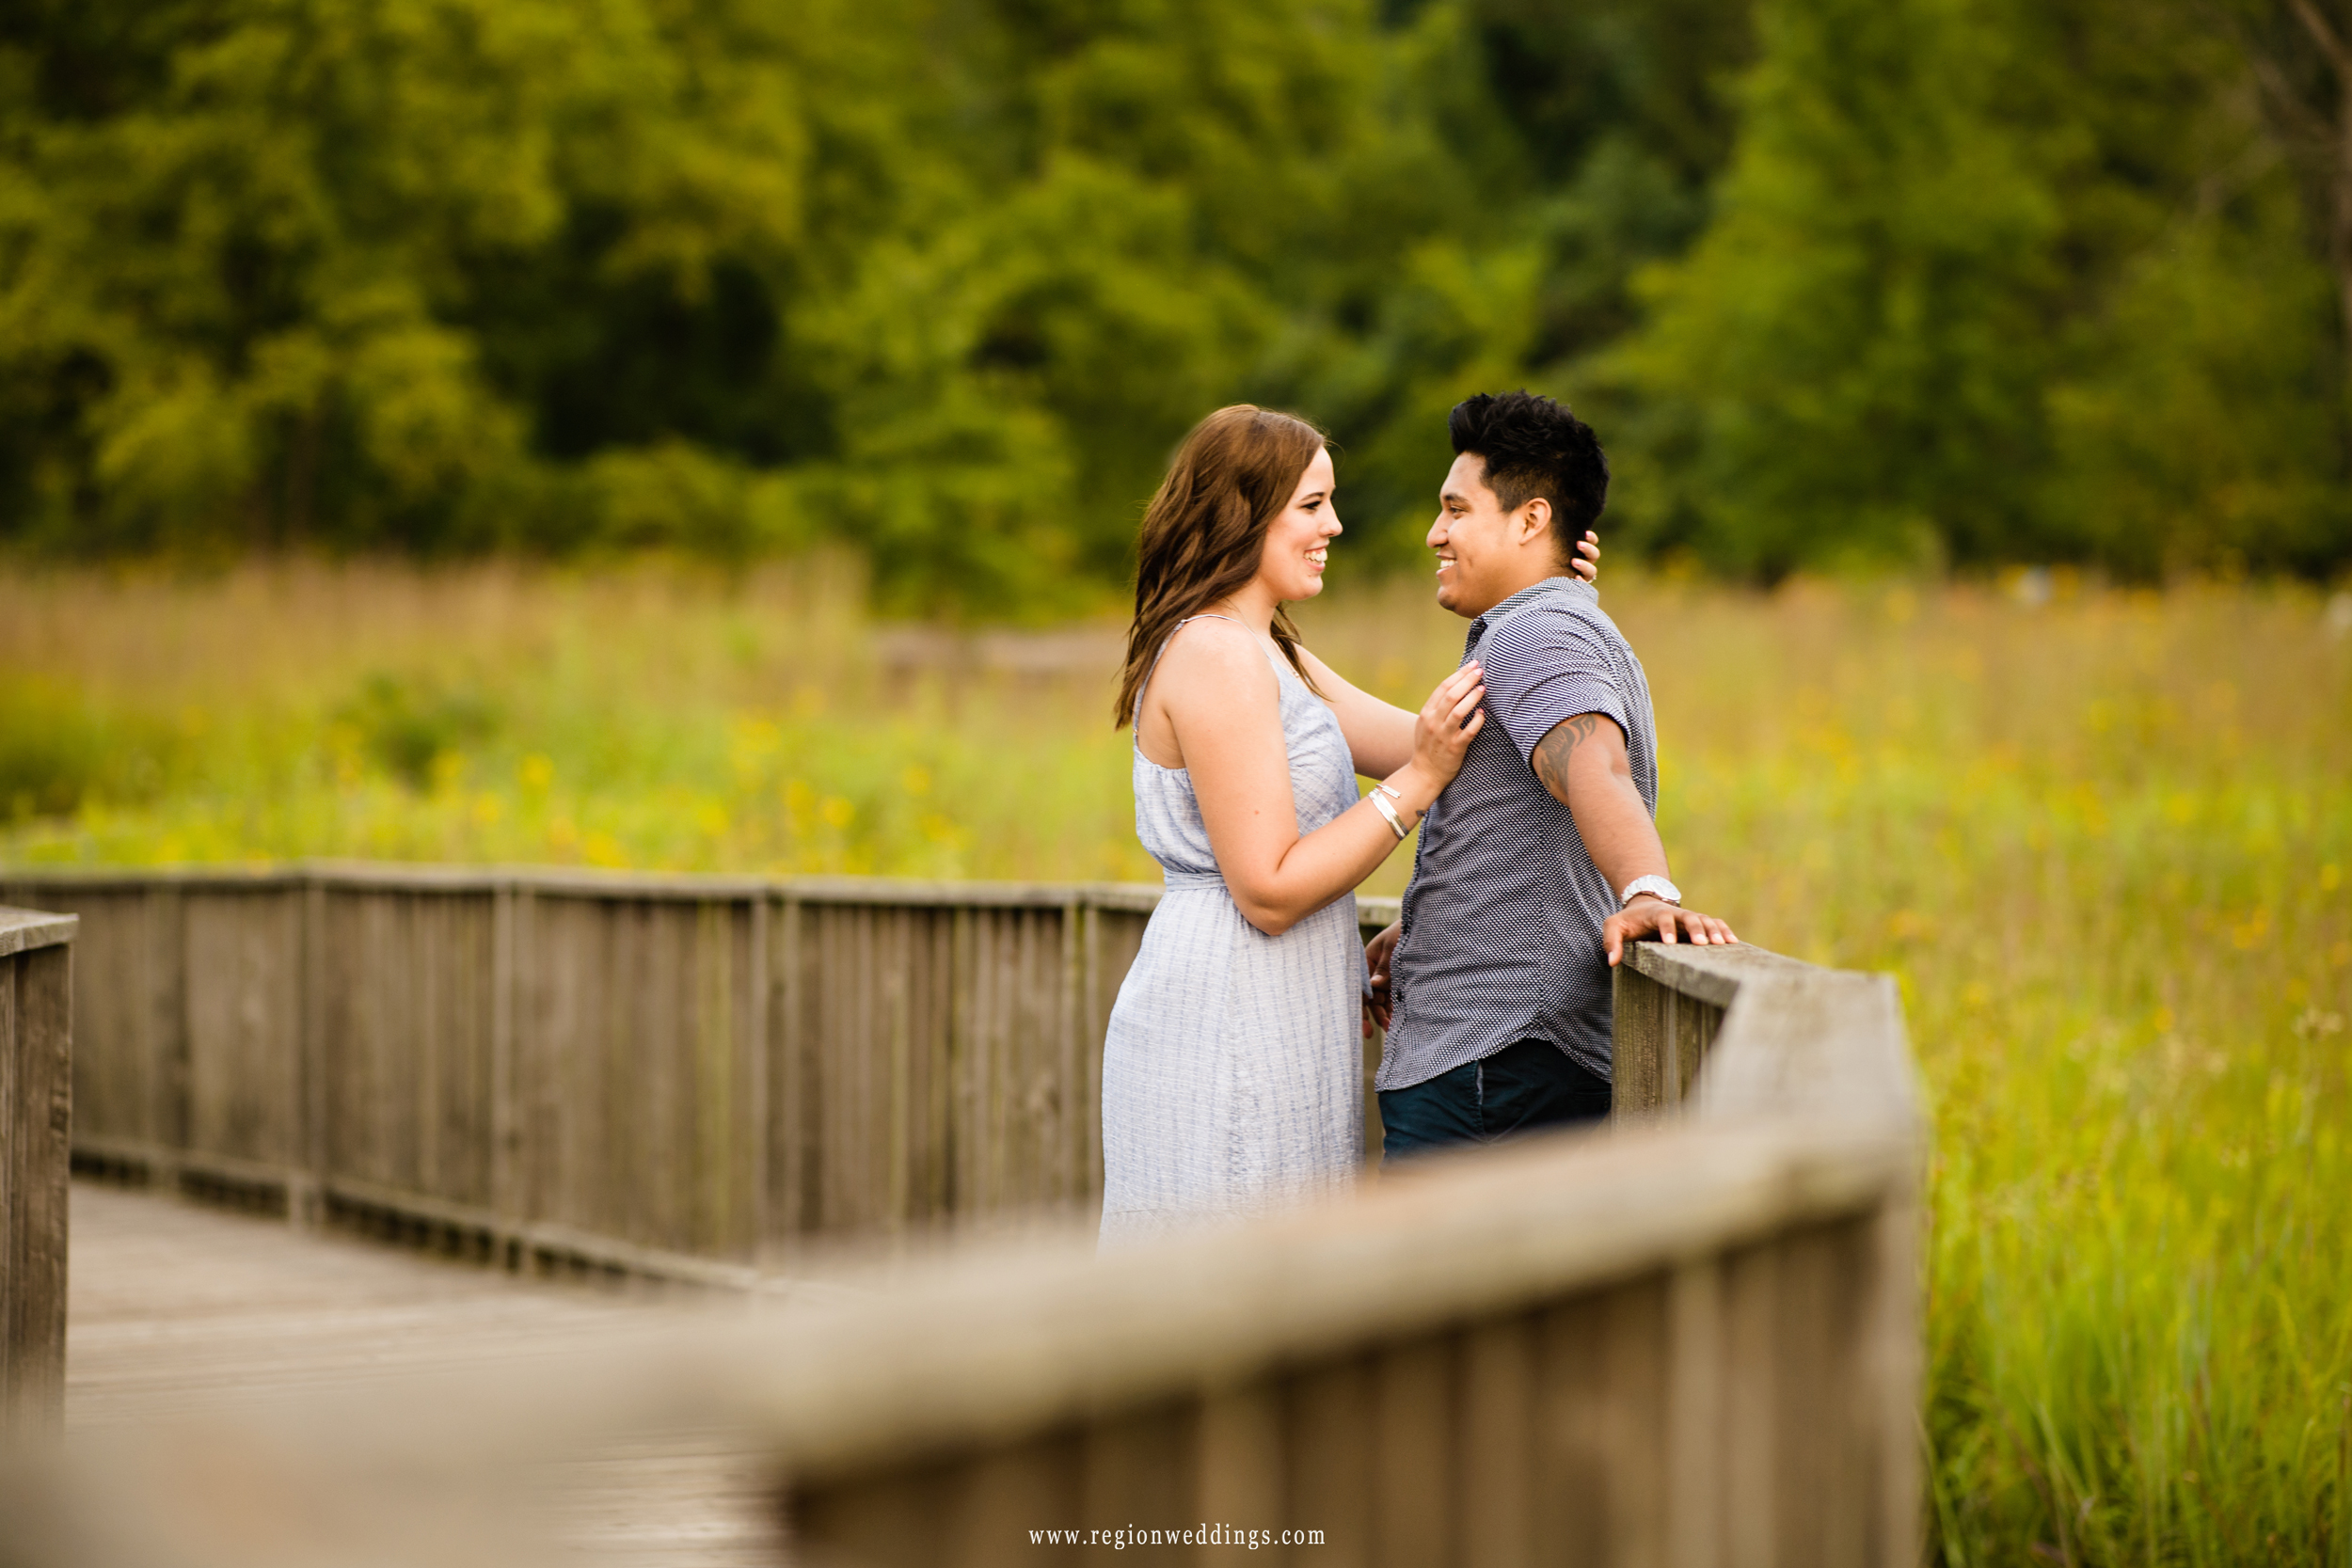 A young couple embraces on the wooden boardwalk at Coffee Creek.